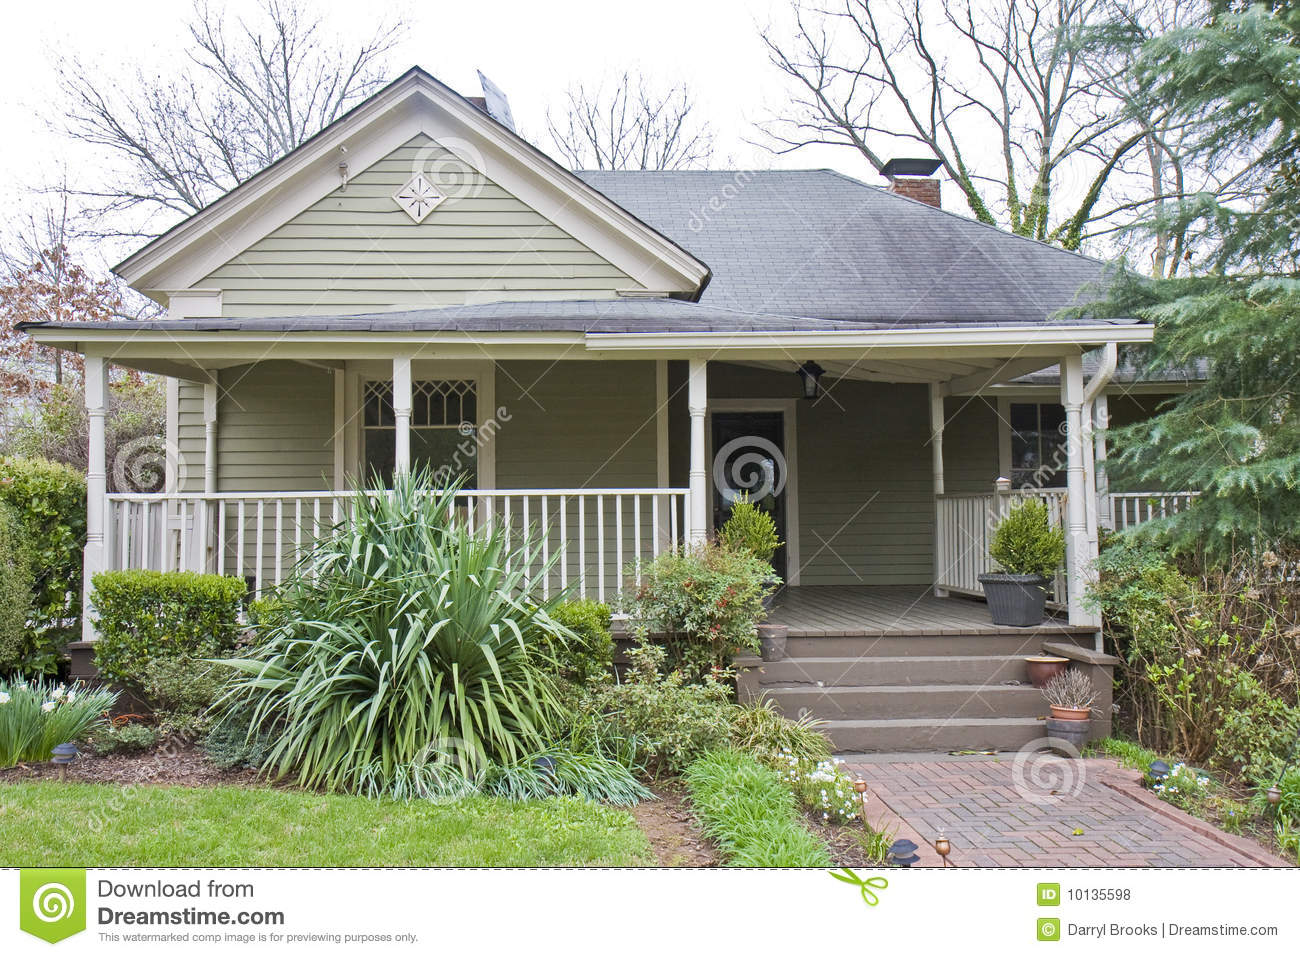 Small Wood Cottage Royalty Free Stock Photos Image 10135598